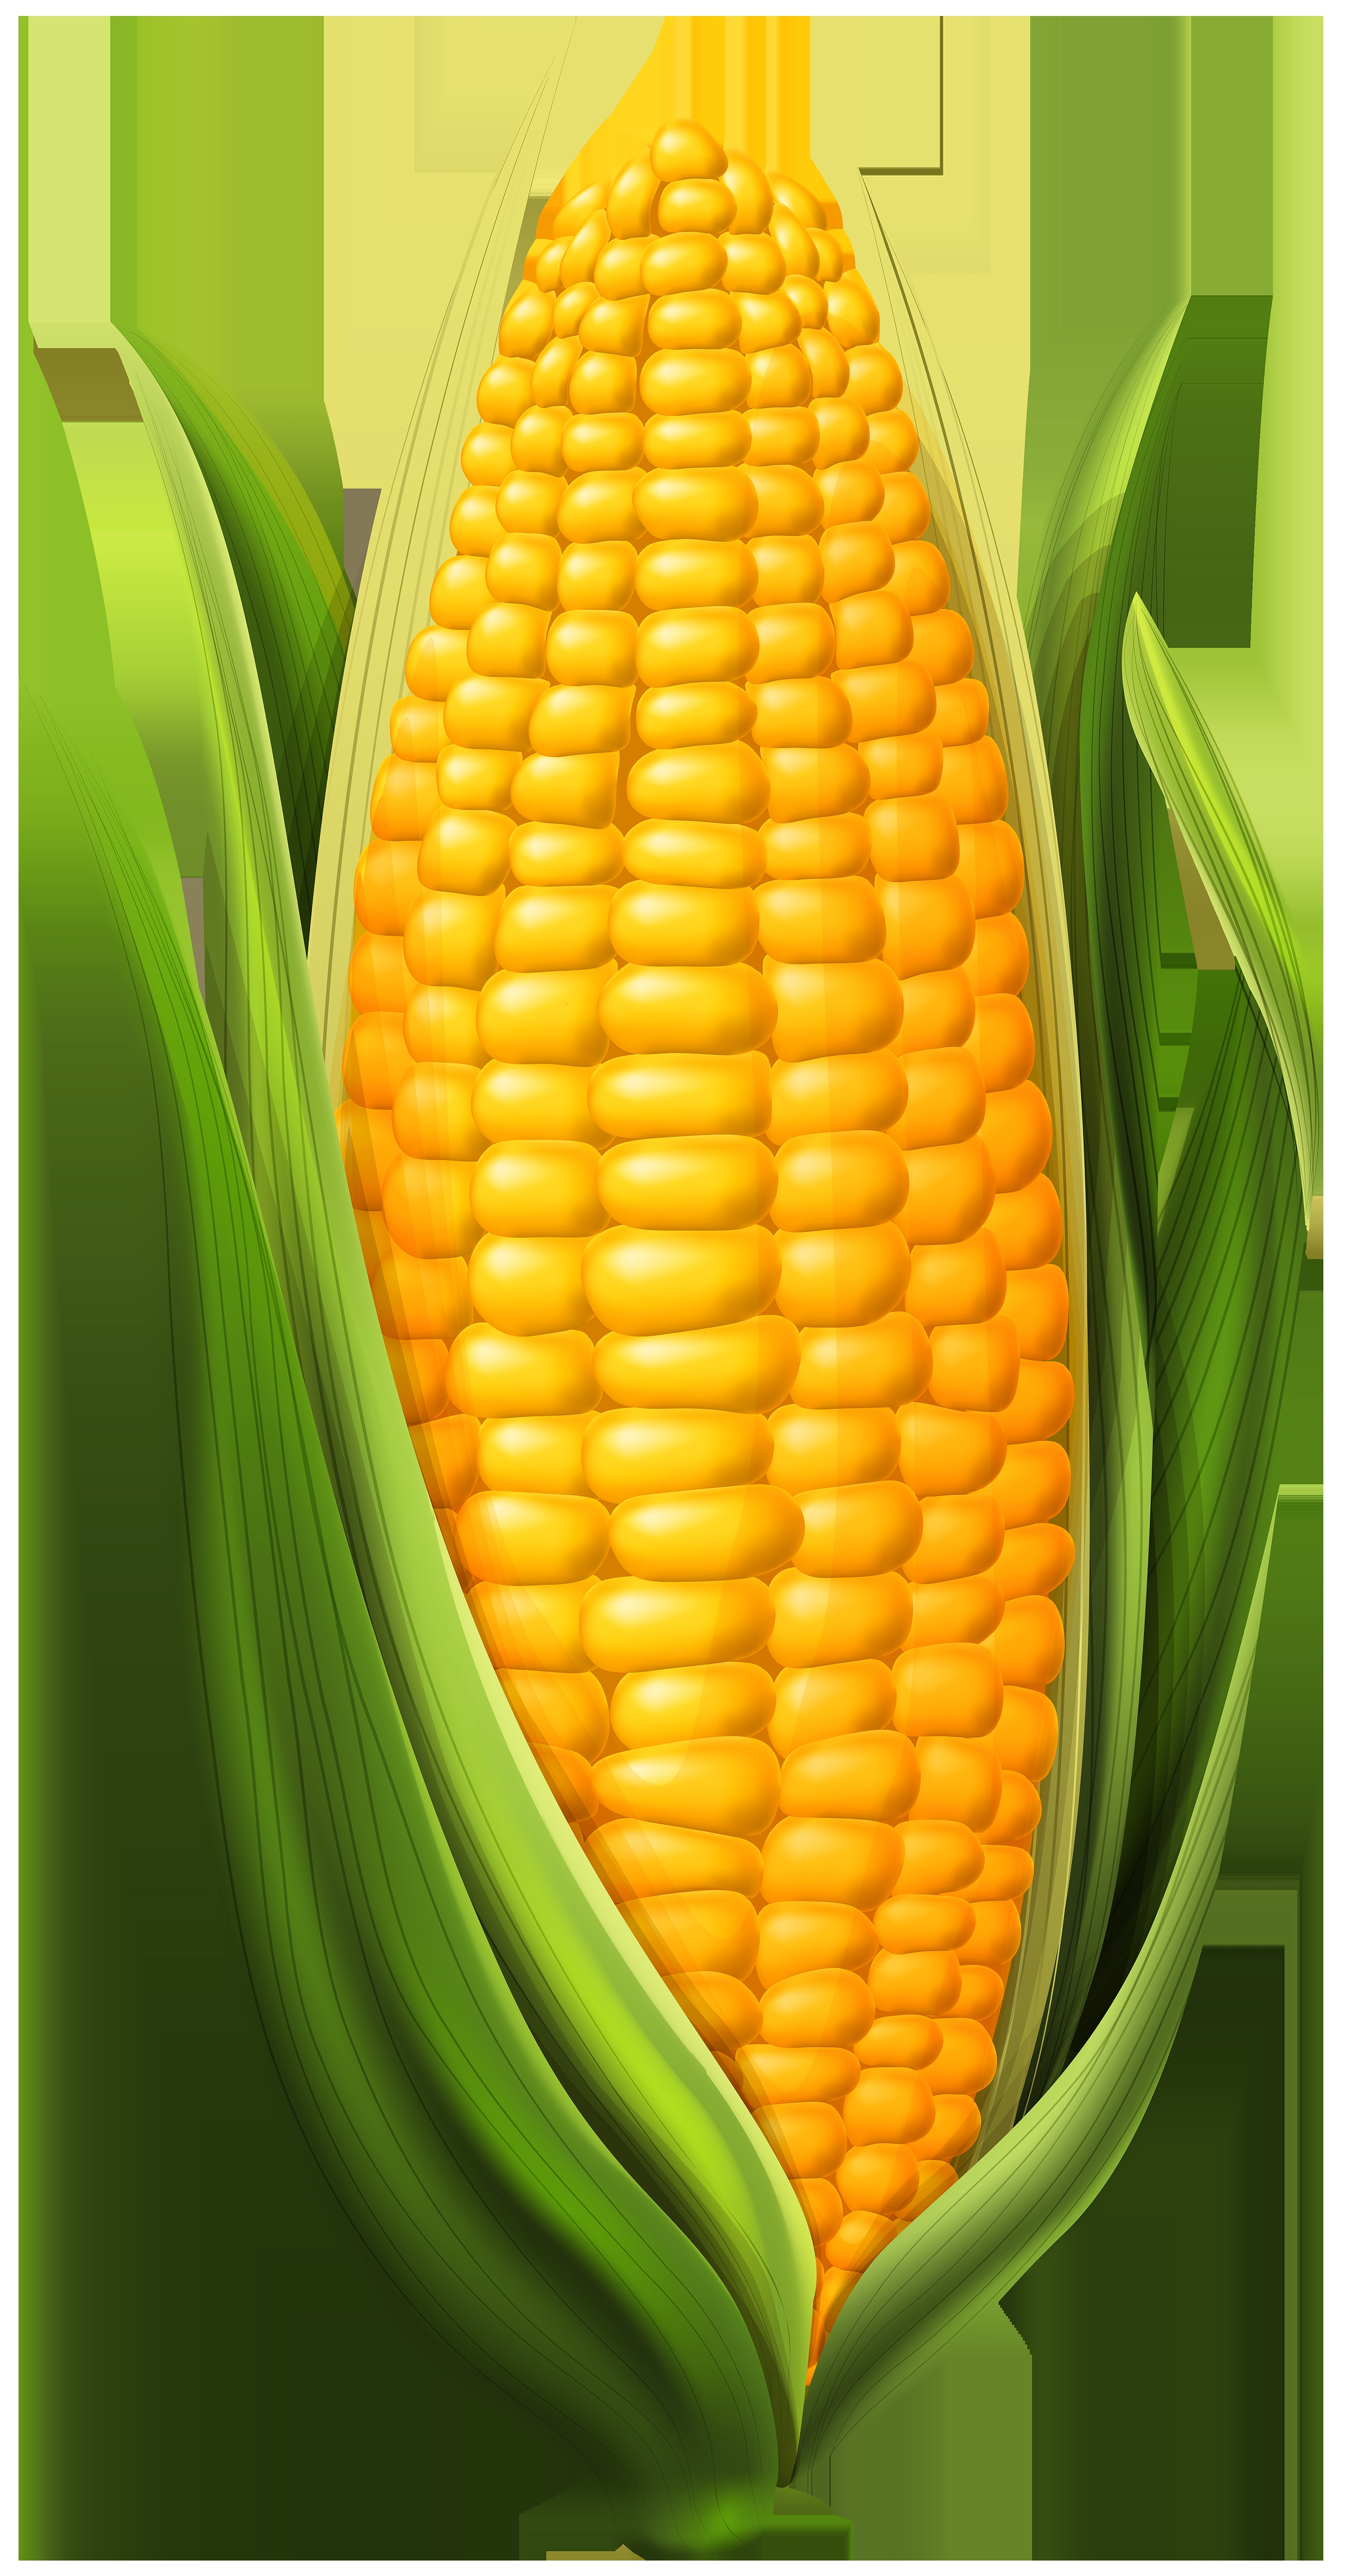 Corn clipart clip art. Awesome gallery digital collection